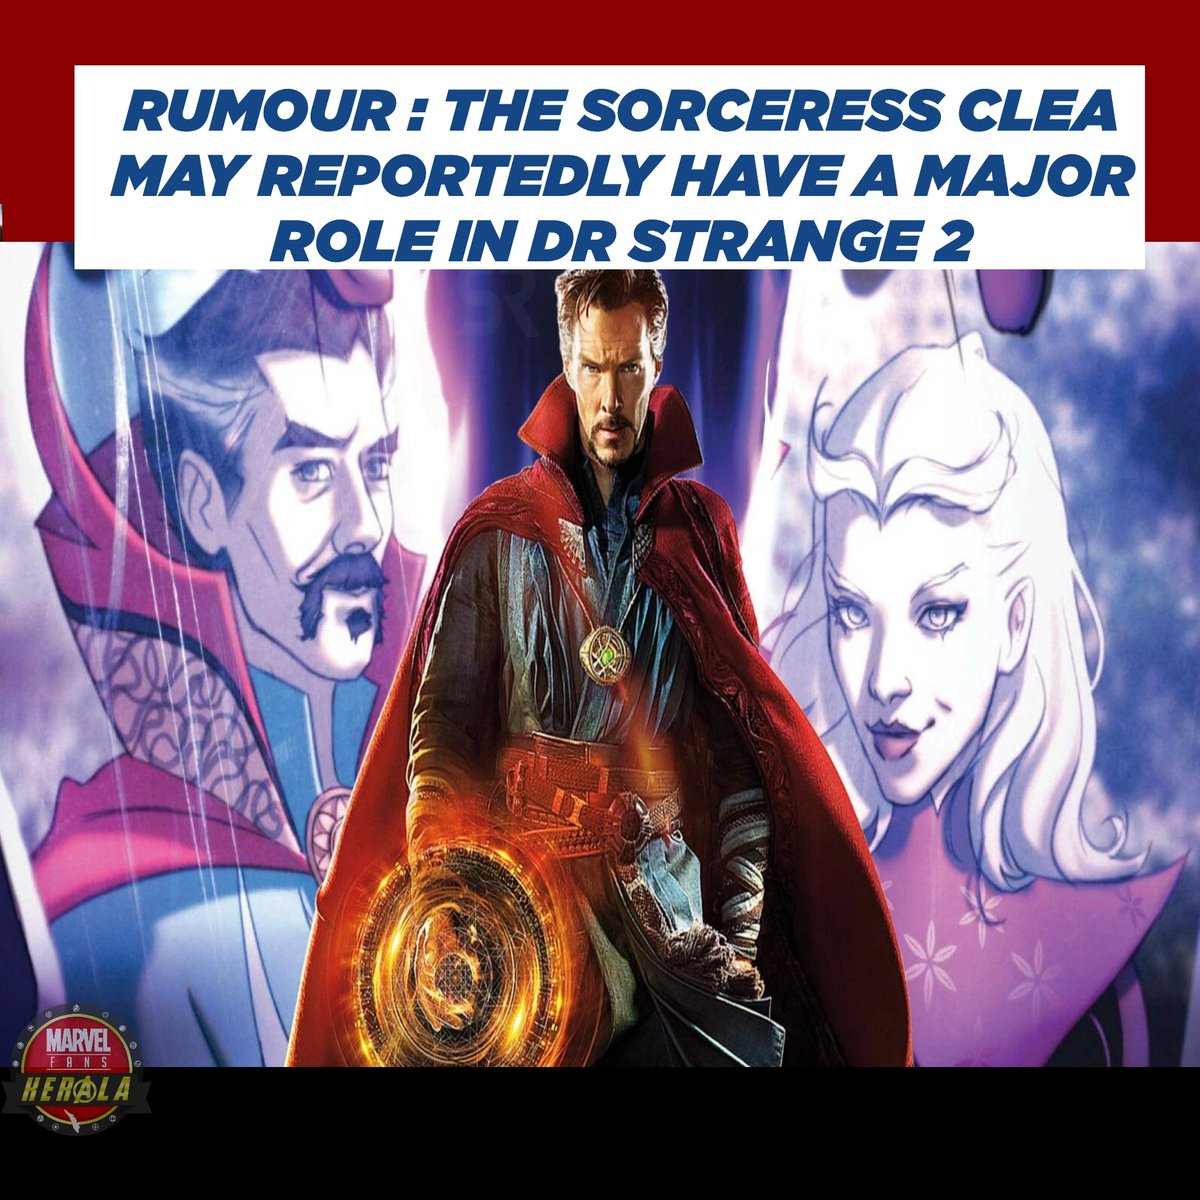 Dr Strange in the Multiverse of Madness reportedly casting fellow sorcerer Clea #MarvelFansKerala #DrStrangeInTheMultiverseOfMadness #clea #drstrange @Kevfeige #BenedictCumberbatch pic.twitter.com/okxfLFTMd7